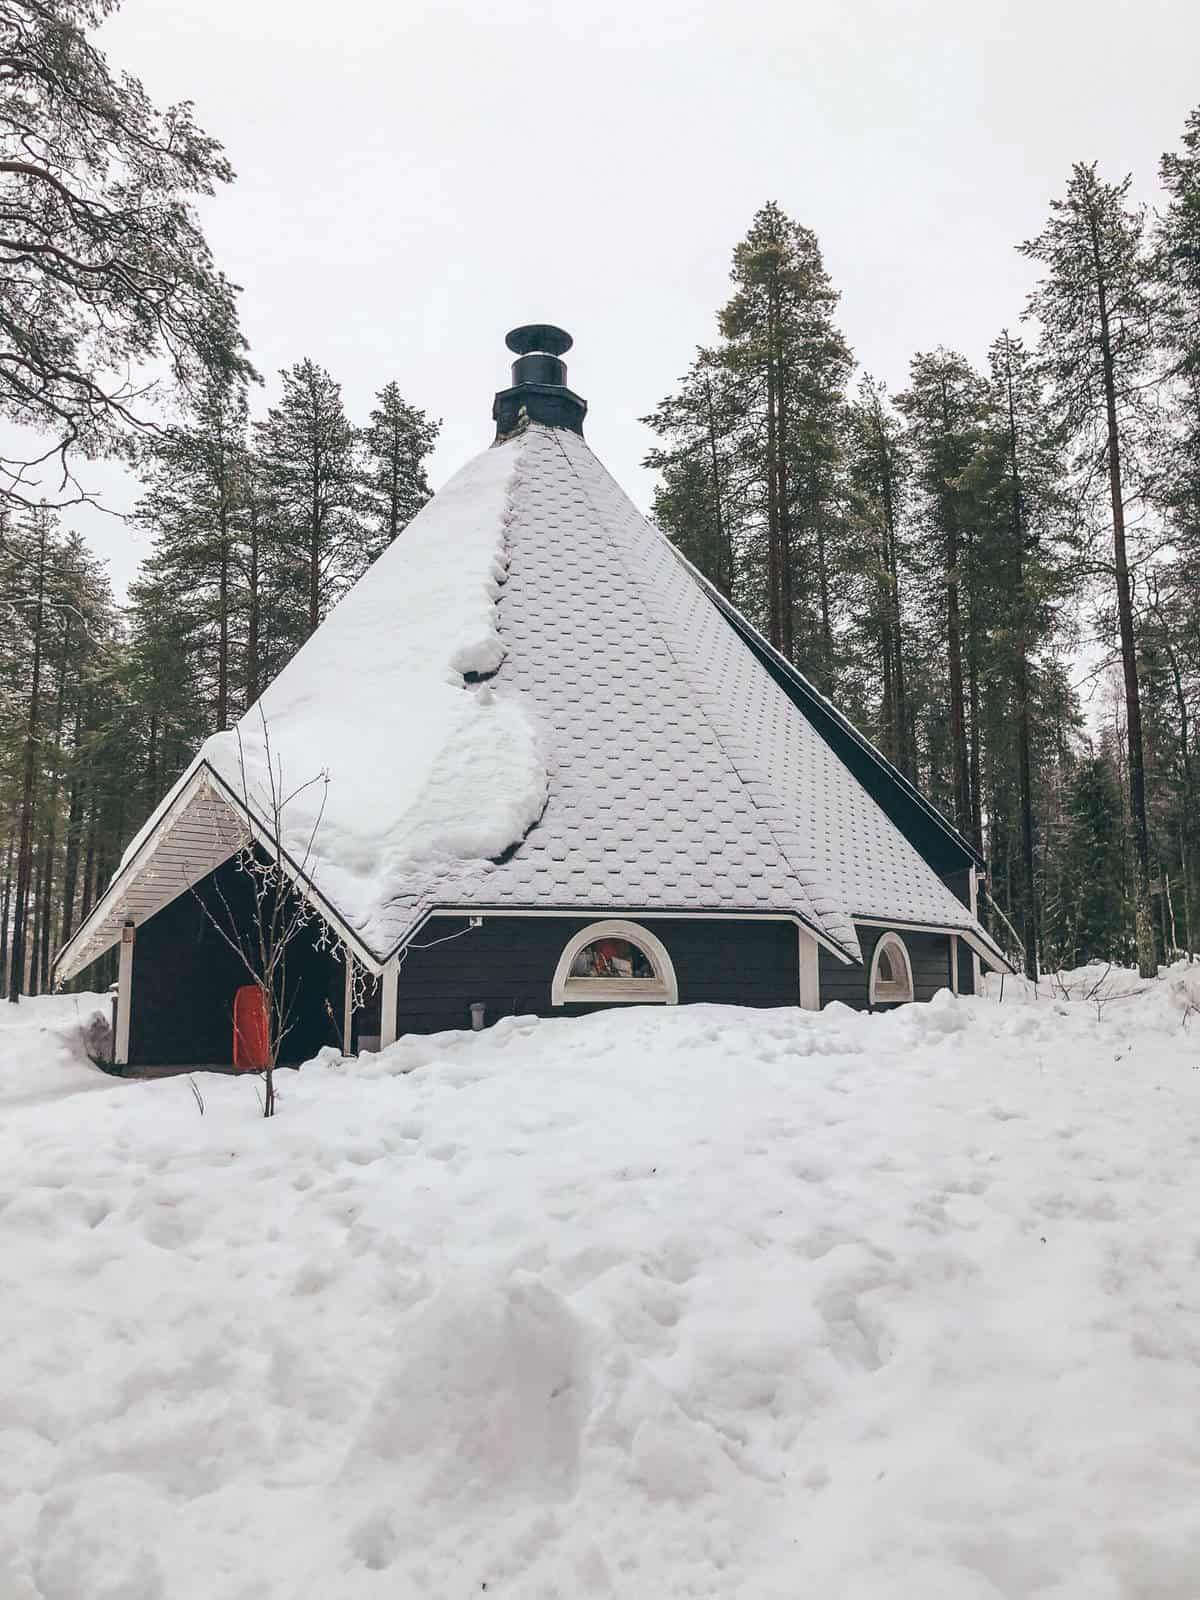 A finnish style hut with a red door surrounded by snow